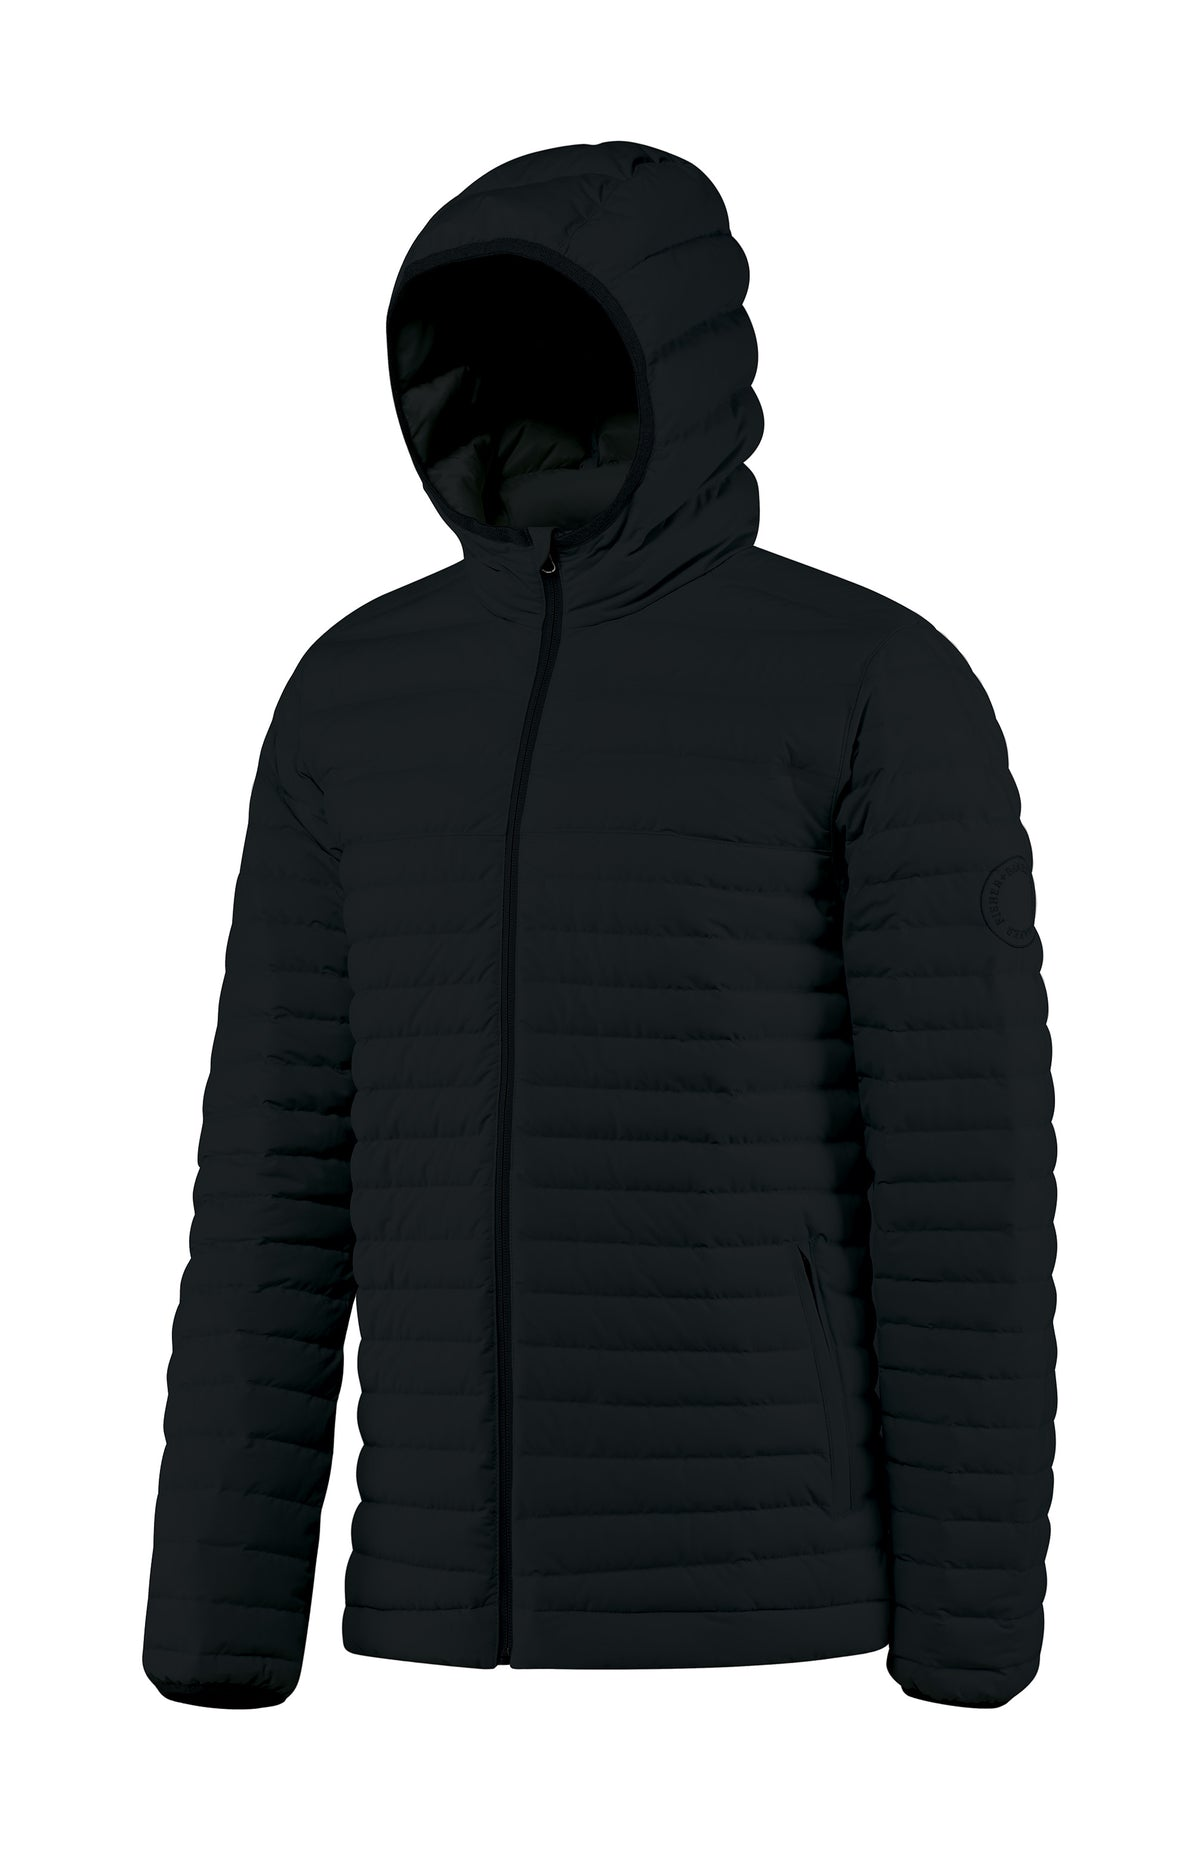 Men's Hooded Down Insulated Jacket the Passage by Fisher + Baker Black